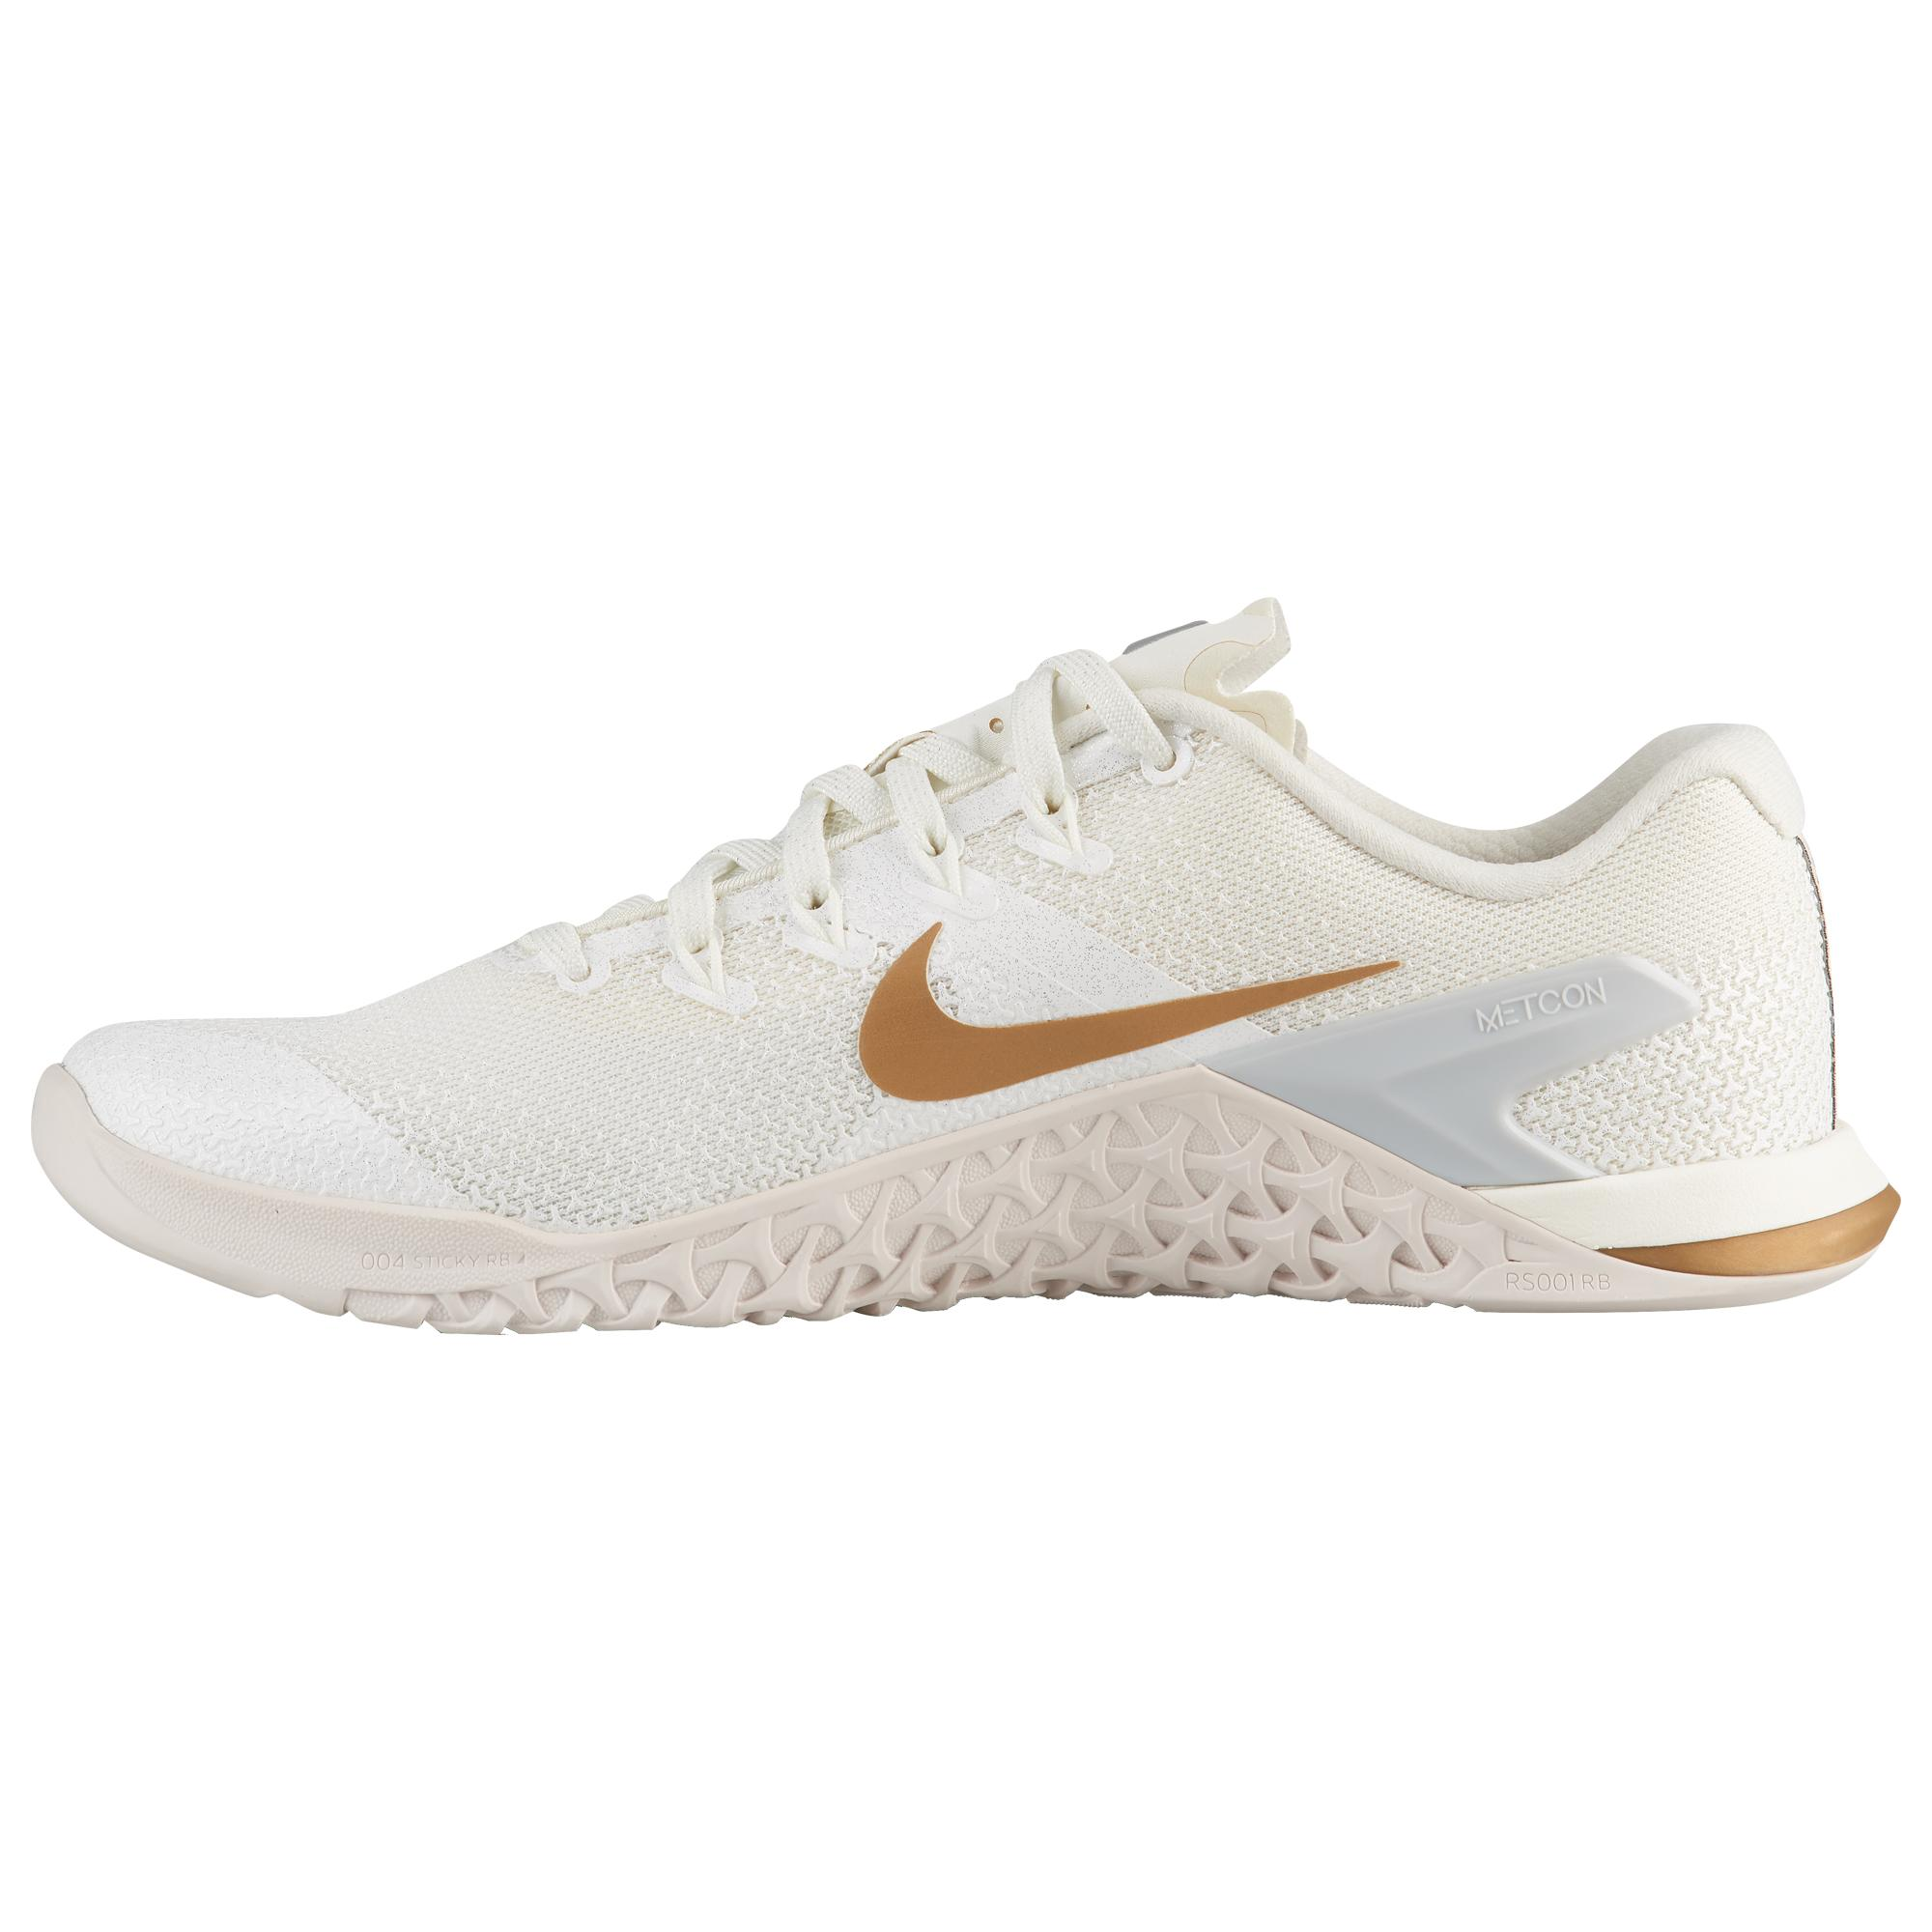 175708386b066 Tap to visit site. Nike - Metallic Metcon 4 Champagne Sports Shoes  White/gold Fitness/training ...